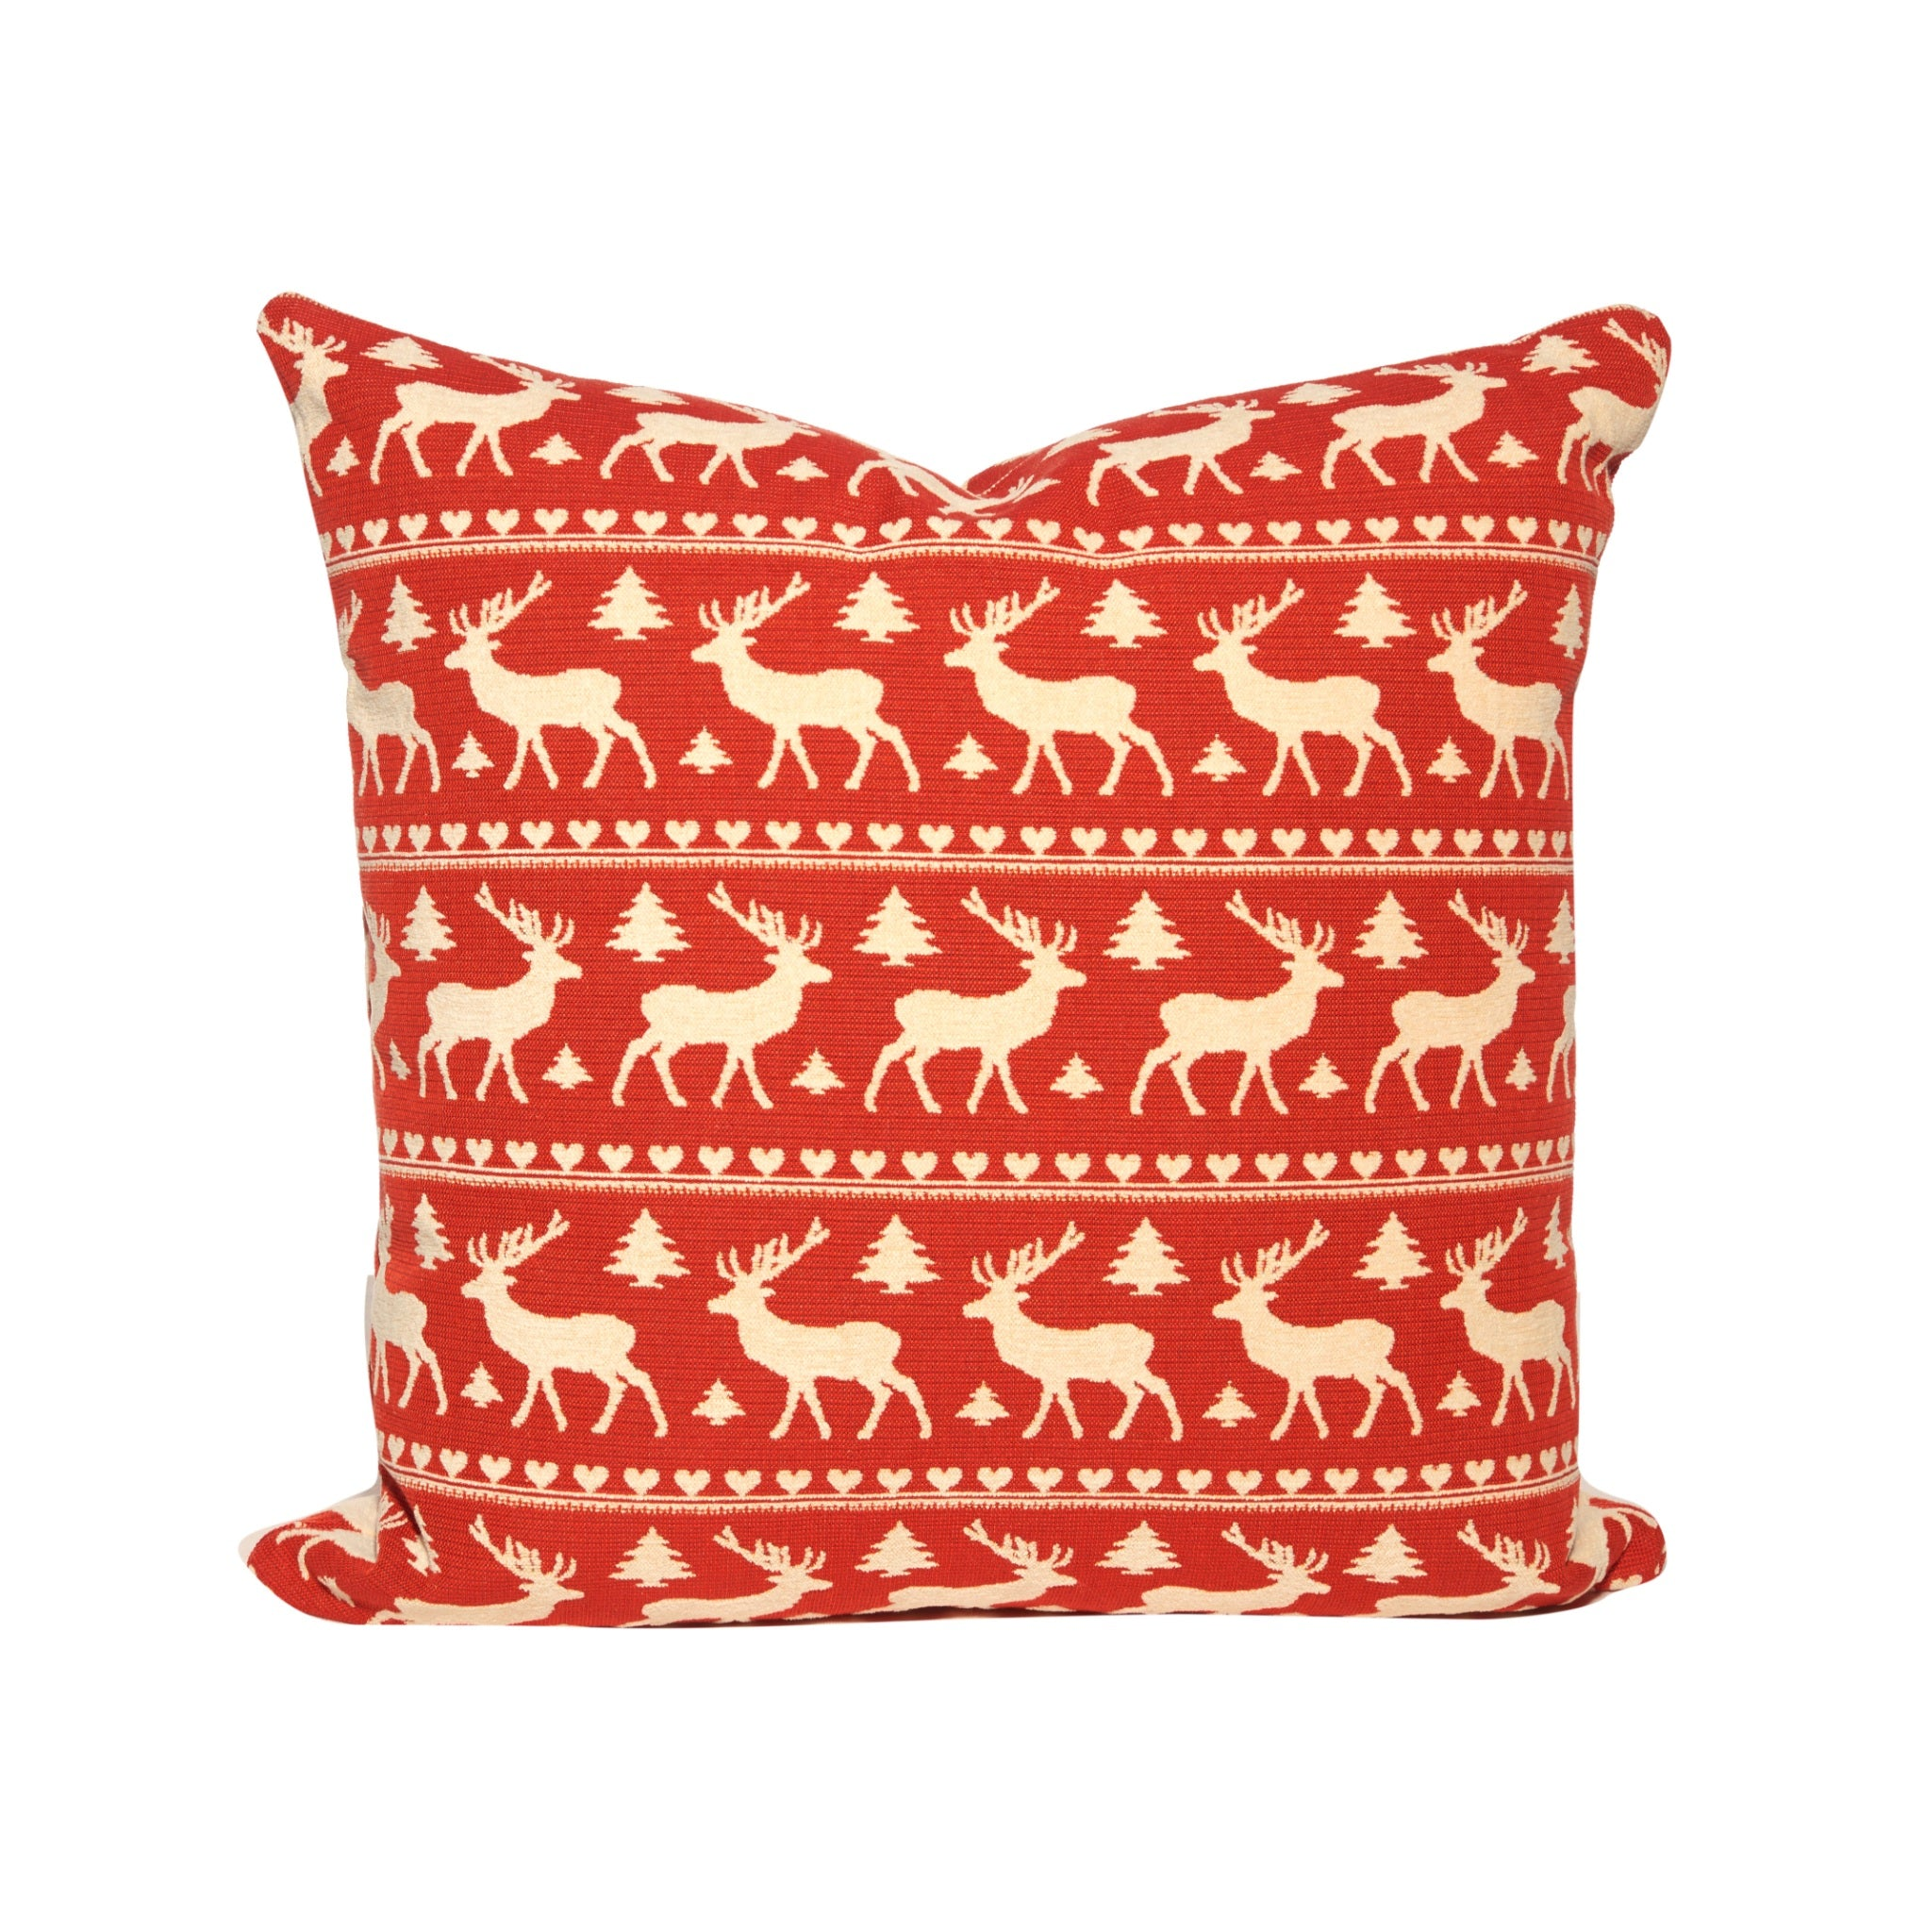 Reindeer Motif Throw Pillows